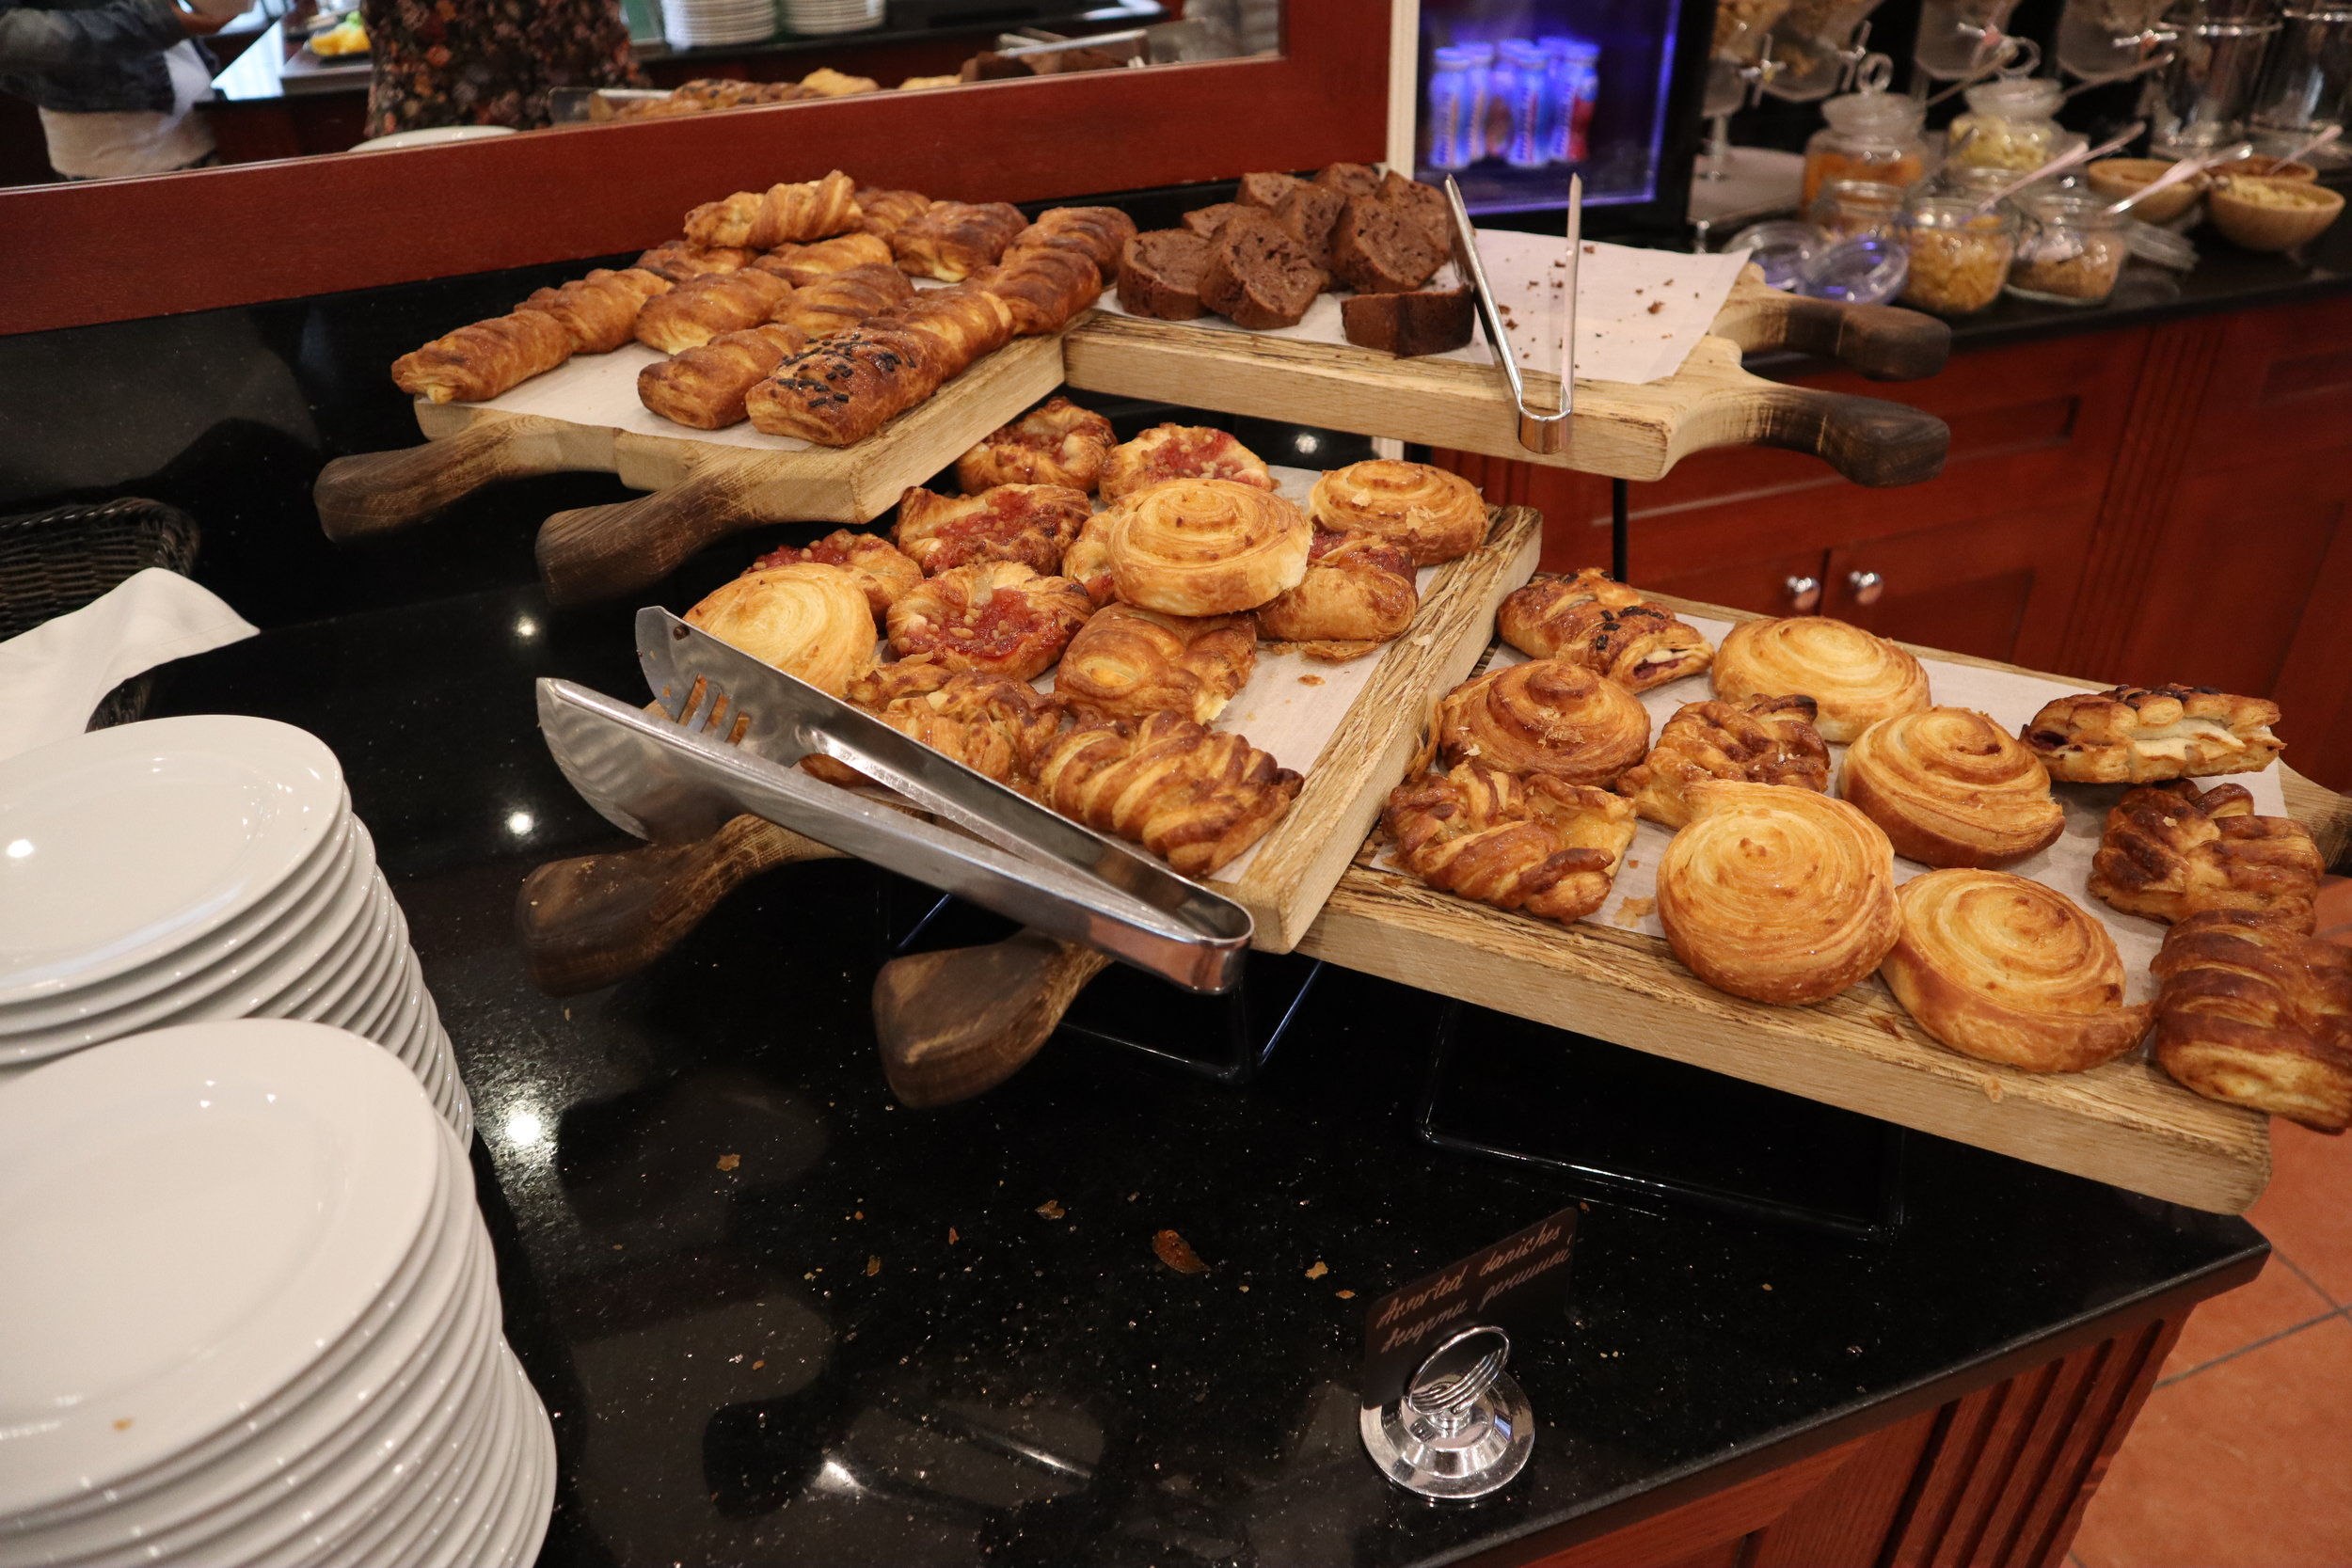 Marriott Moscow Tverskaya – Breakfast pastries